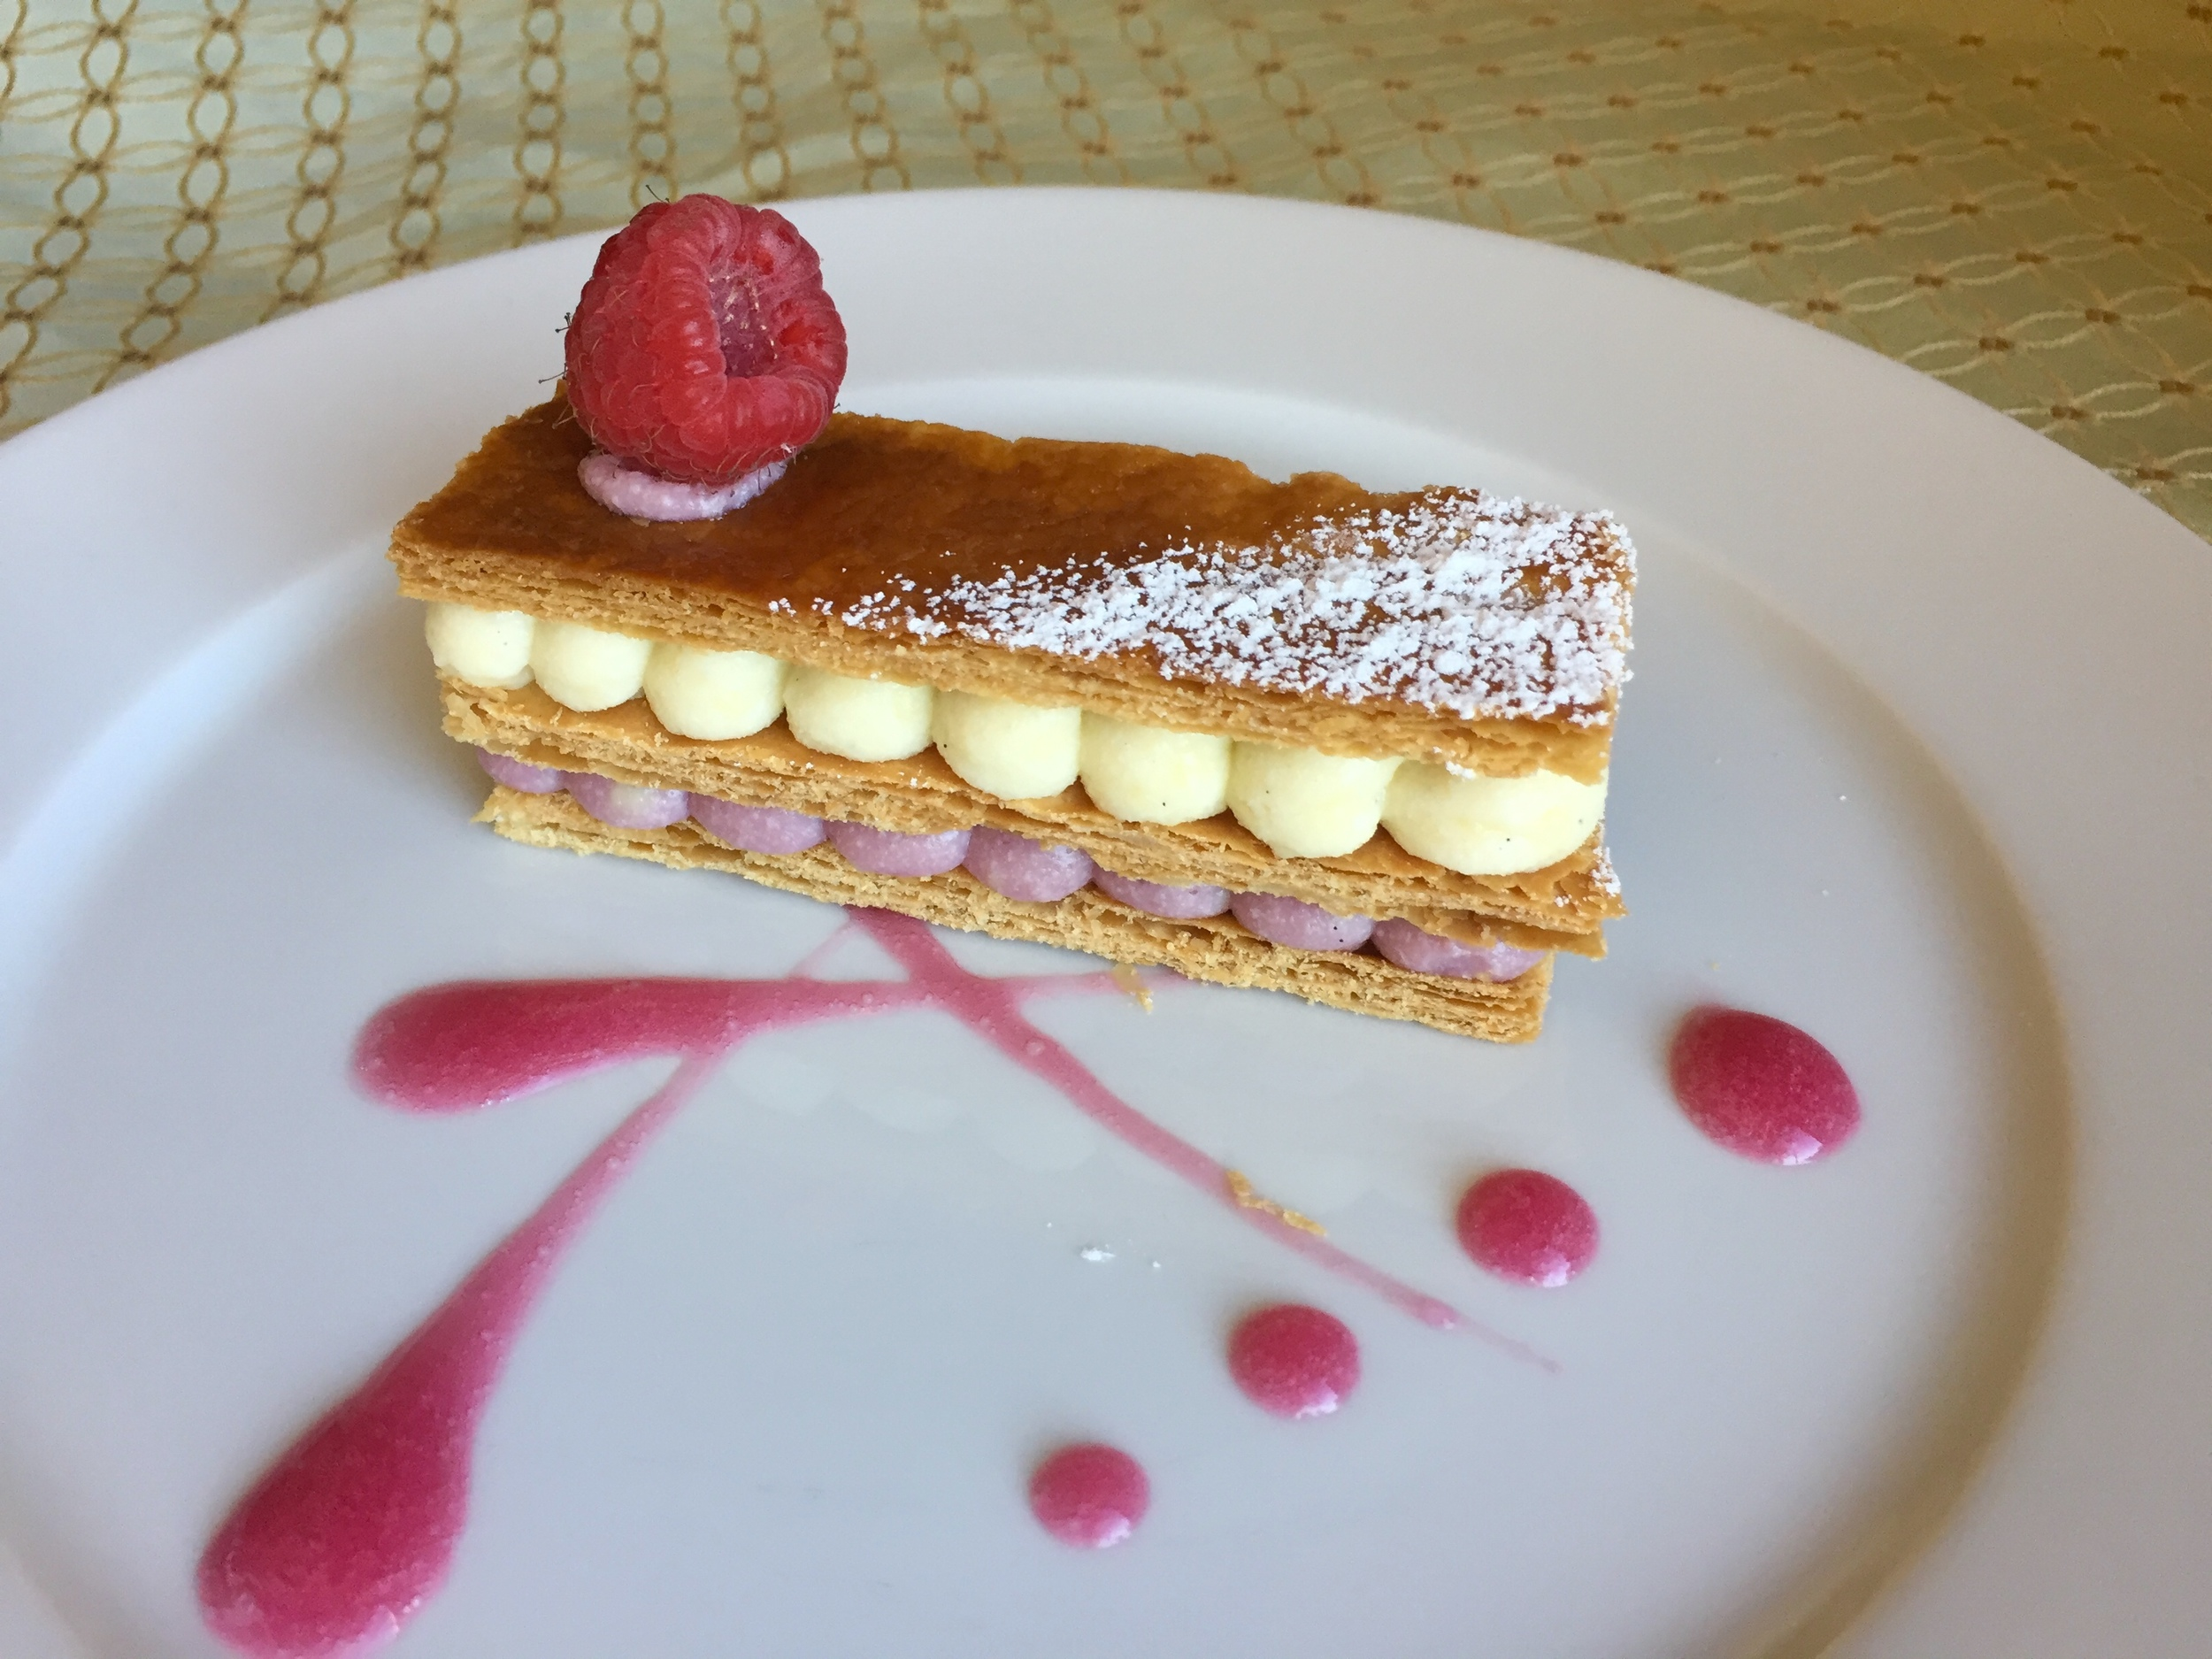 Millefeuille Framboise  覆盆子千层酥